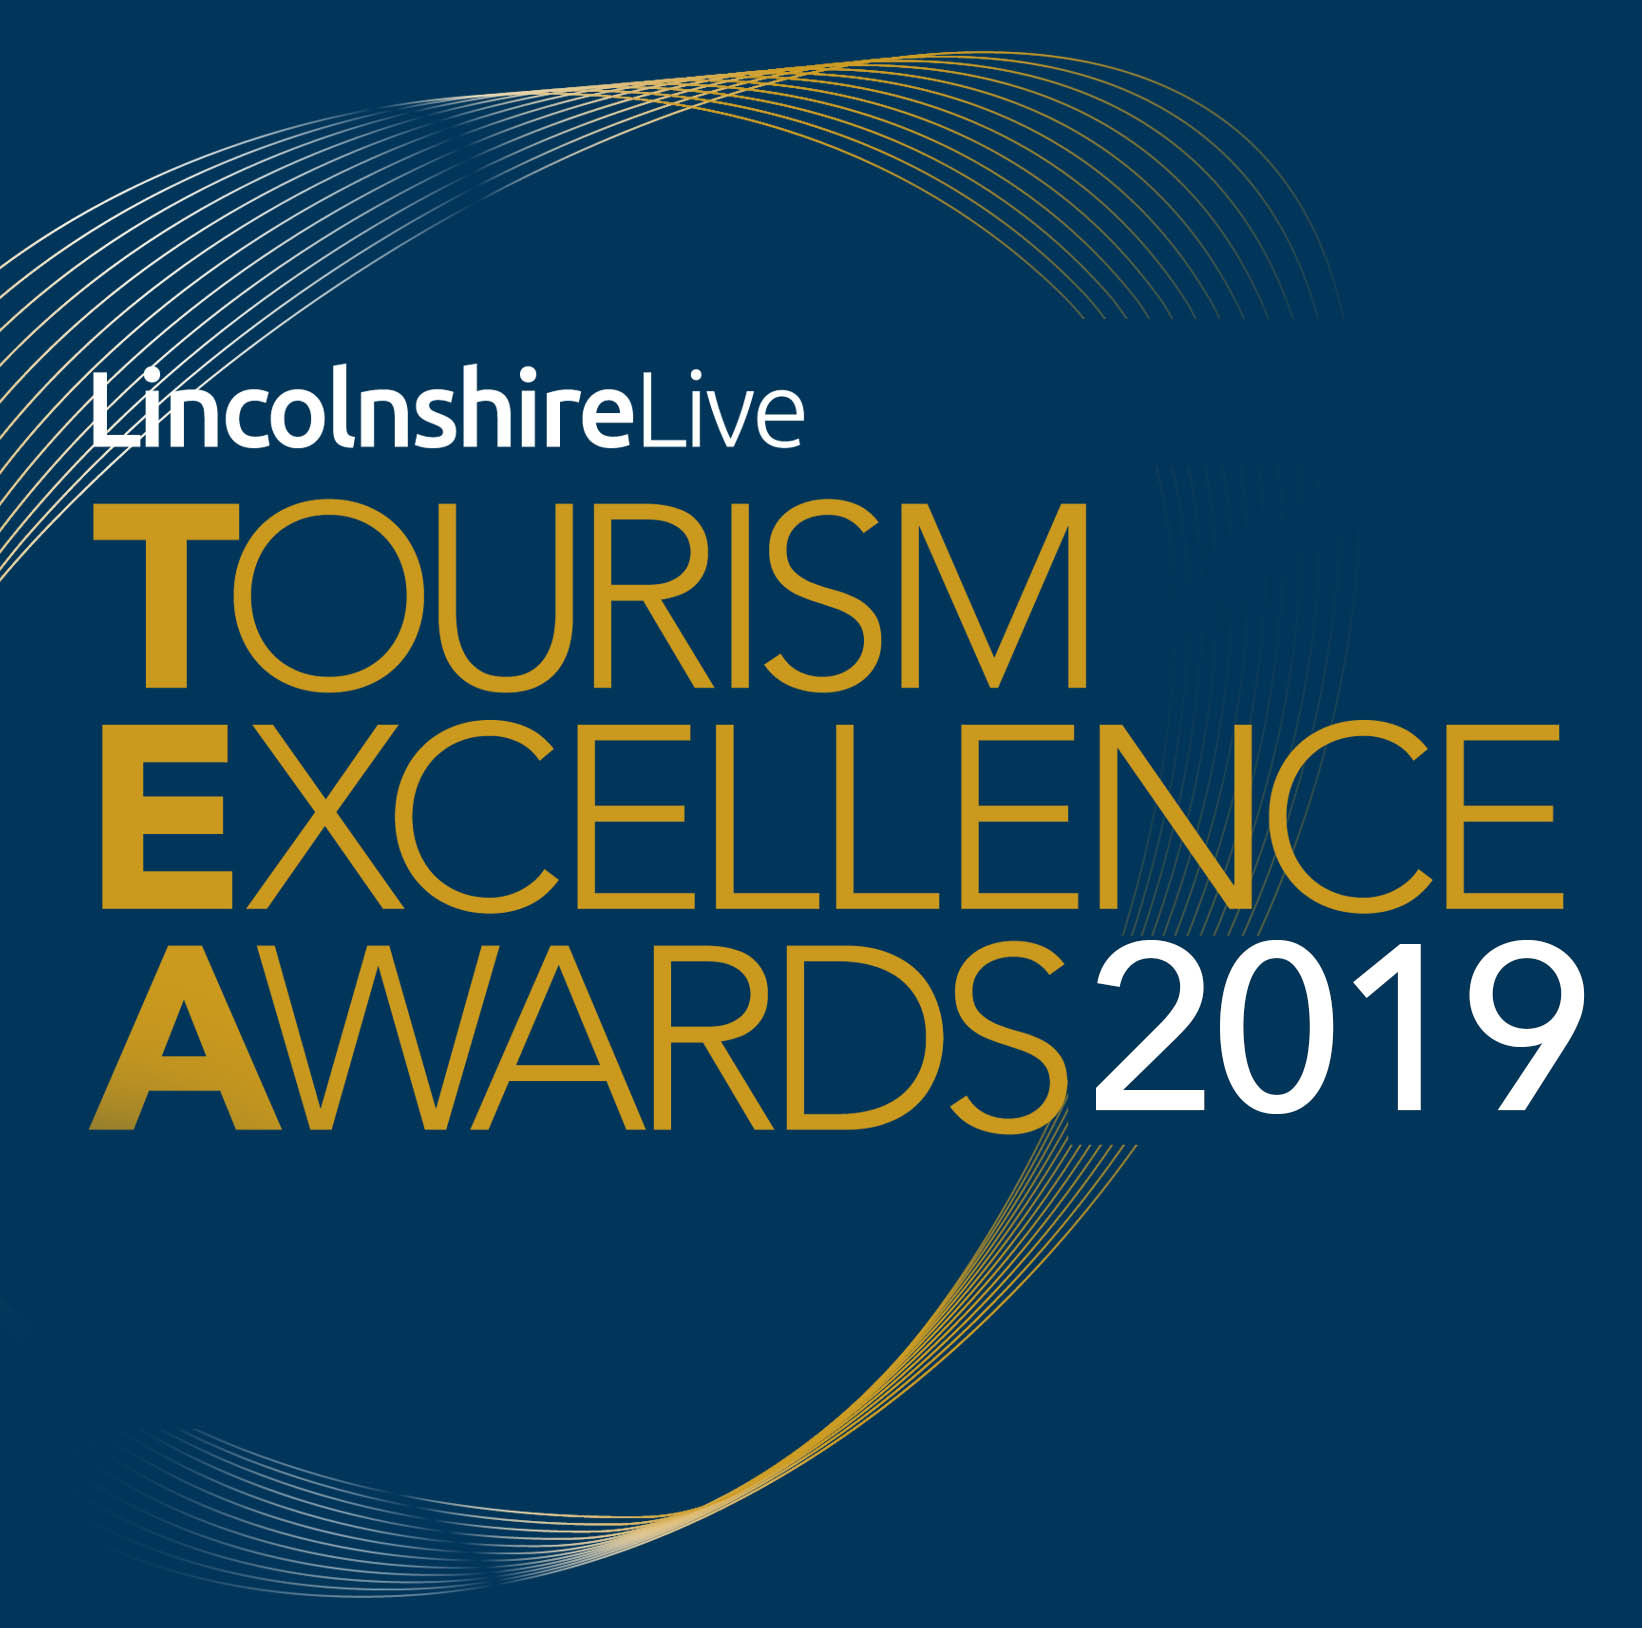 Lincolnshire Live Tourism Excellence Awards 2019